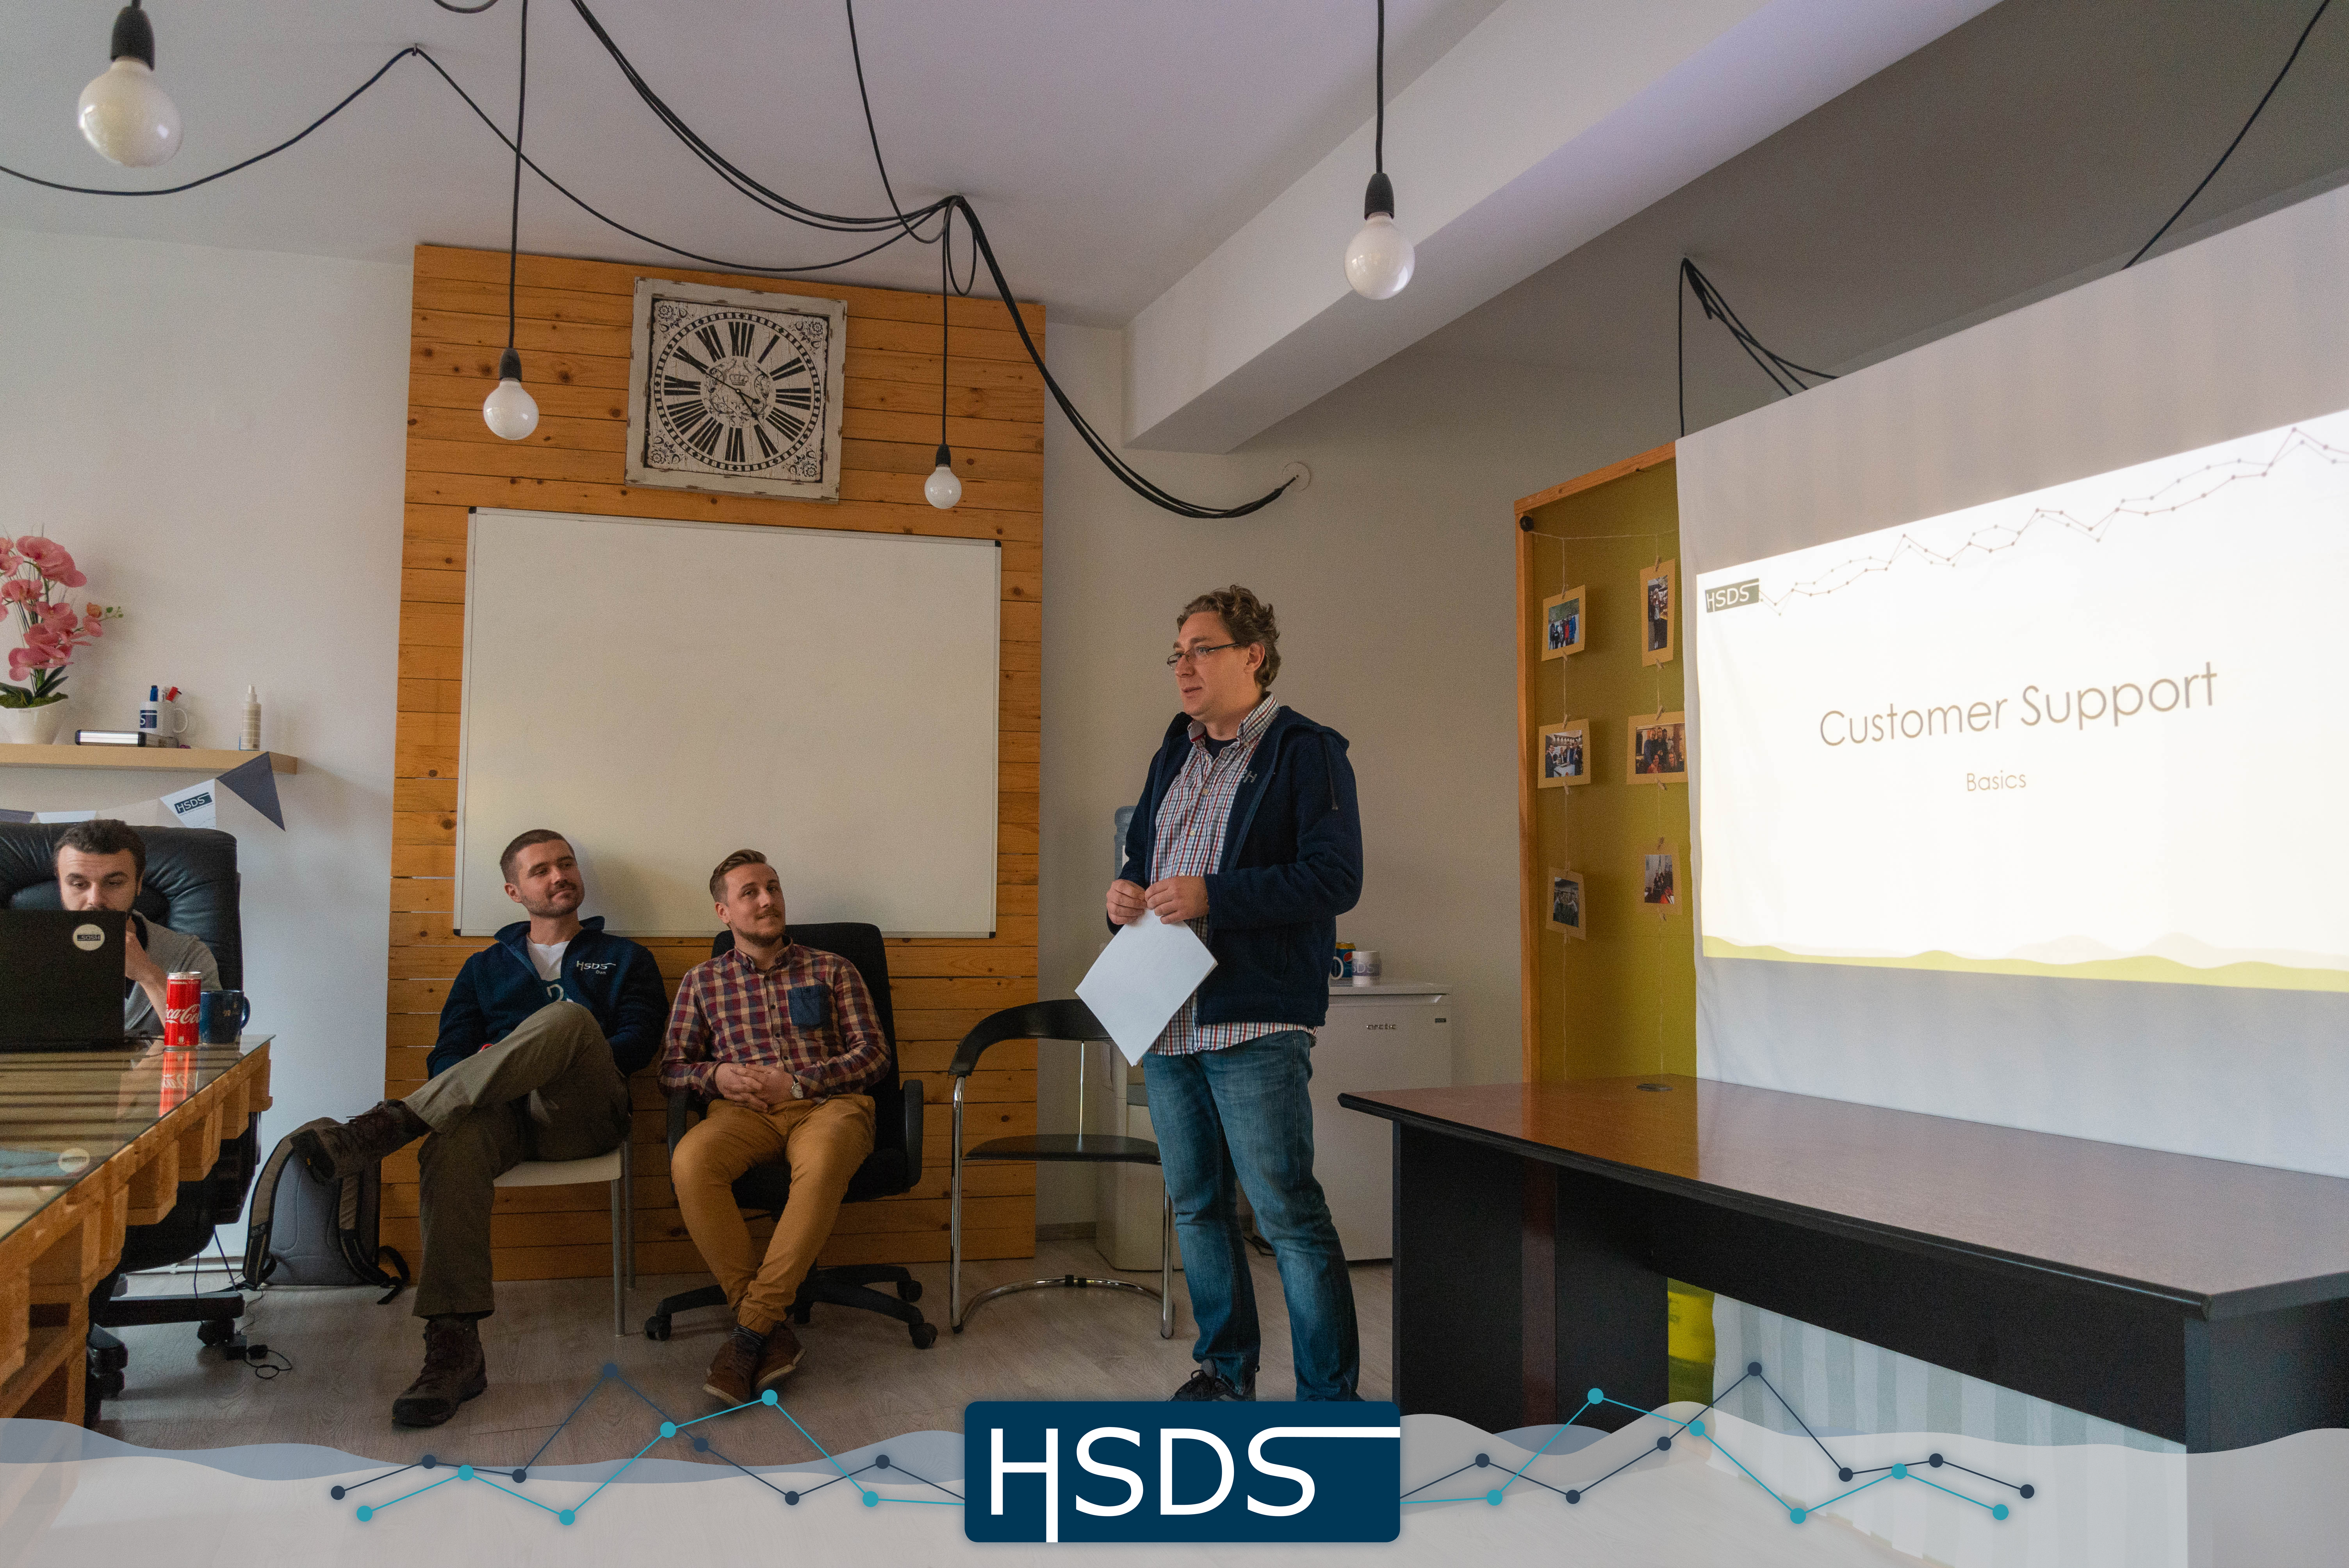 HSDS - Customer Support Open Day